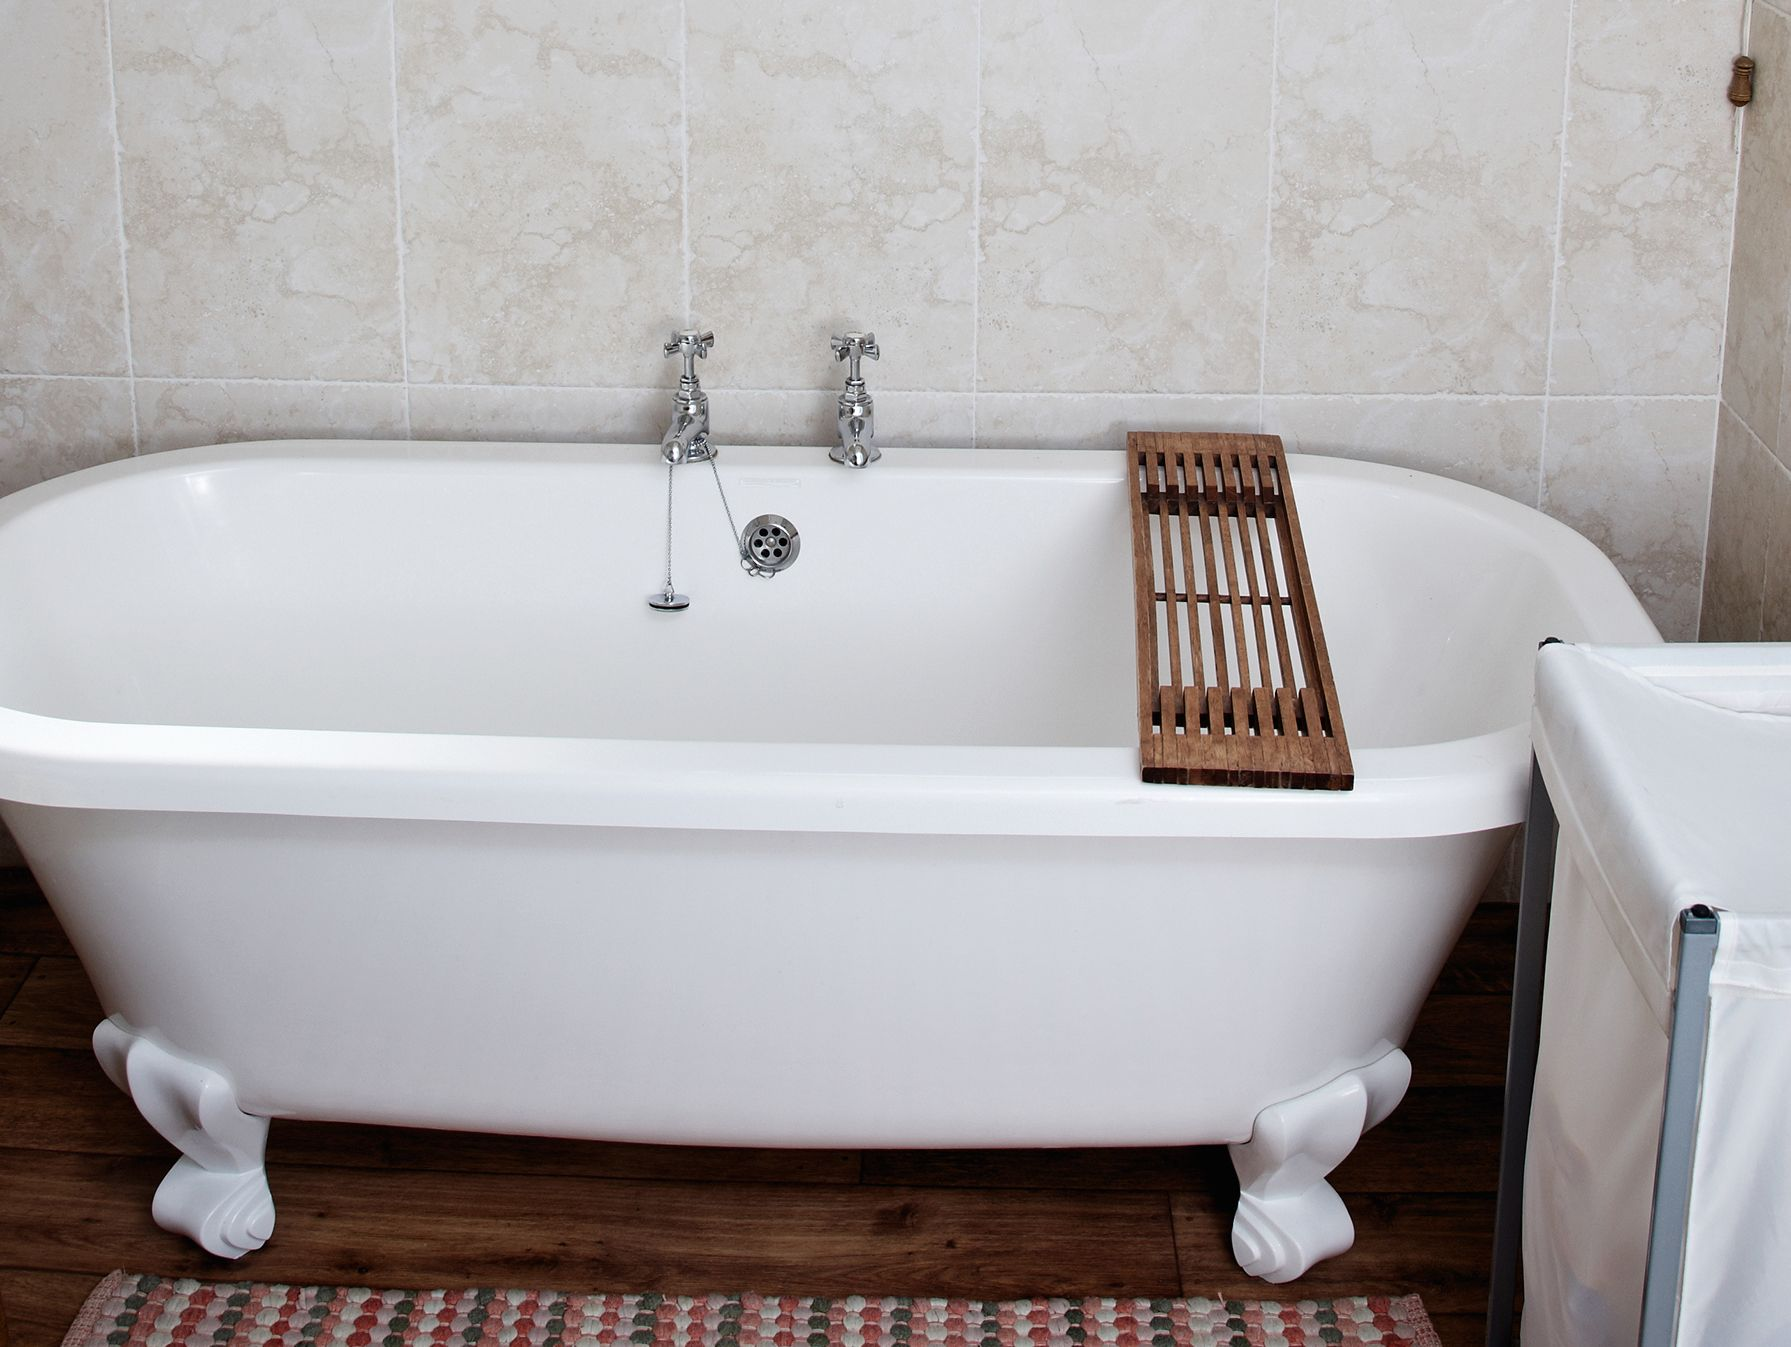 Bath Repair How To Fix Chips In Ceramic Porcelain And Enamel Bathtubs